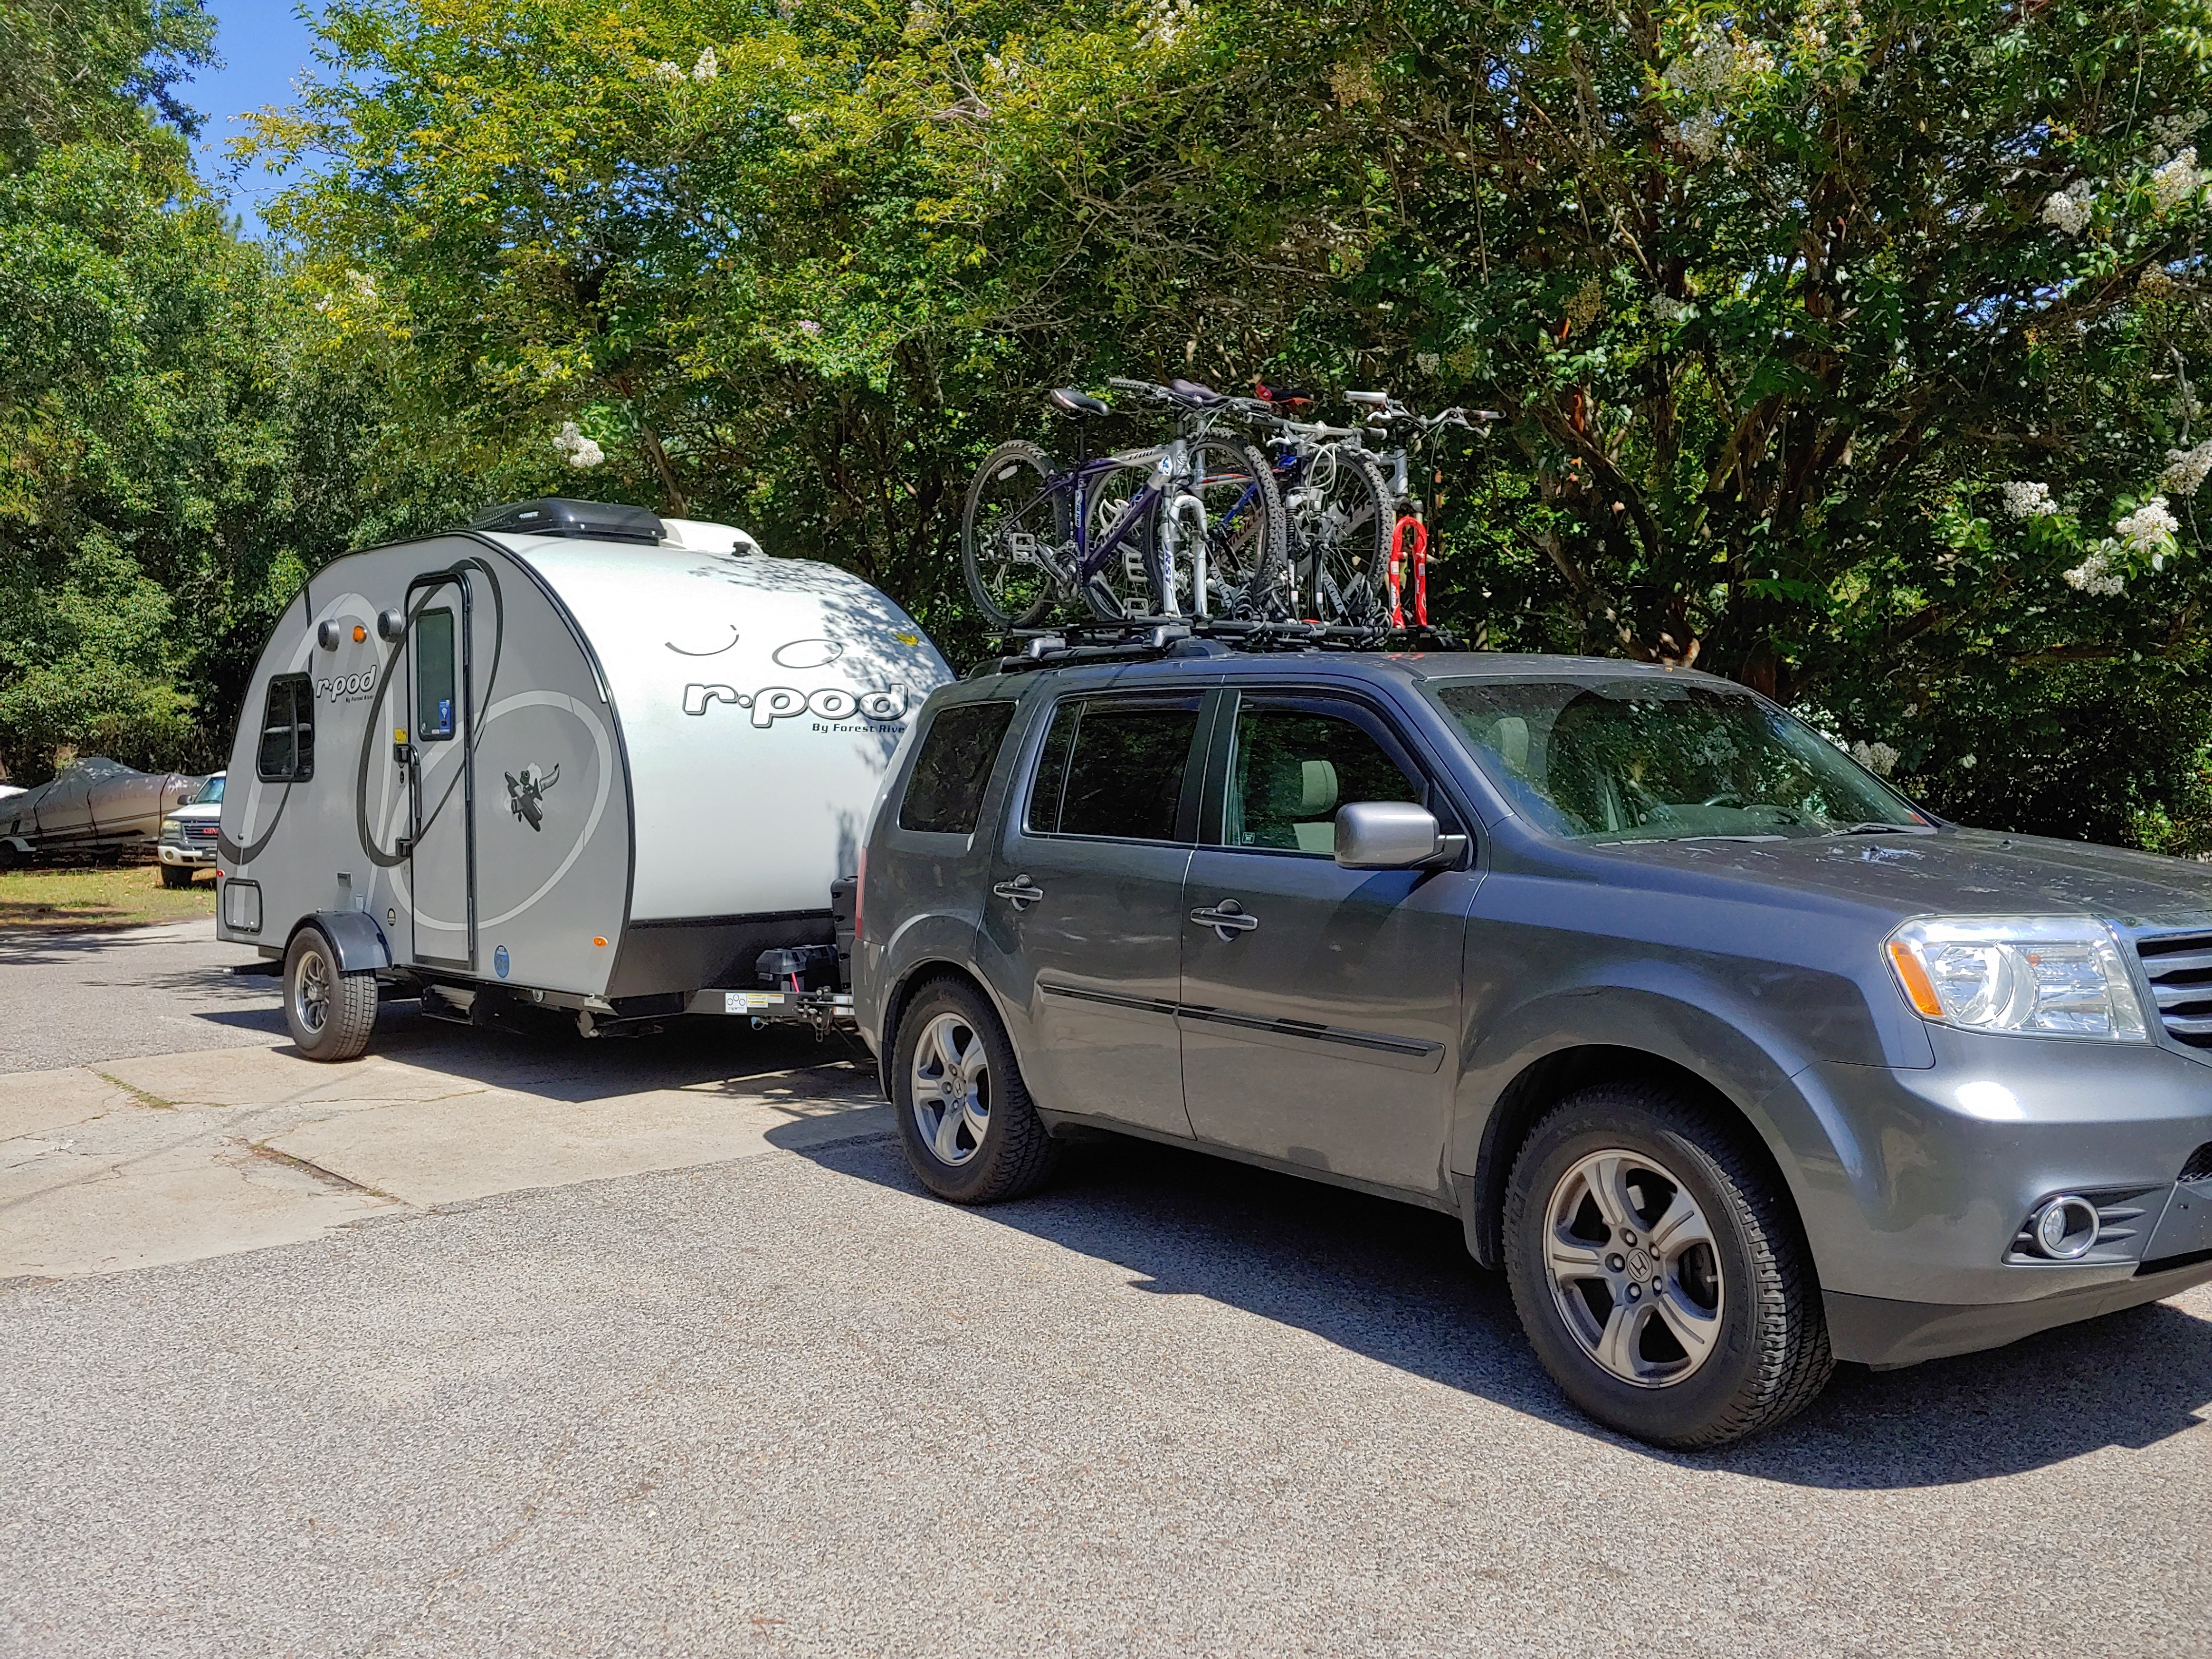 The pod on the go!  As a family of 4, we put 3 bikes on our car and one inside on a bunk.  The other side has a handy outdoor shower.. Forest River R-Pod 2020